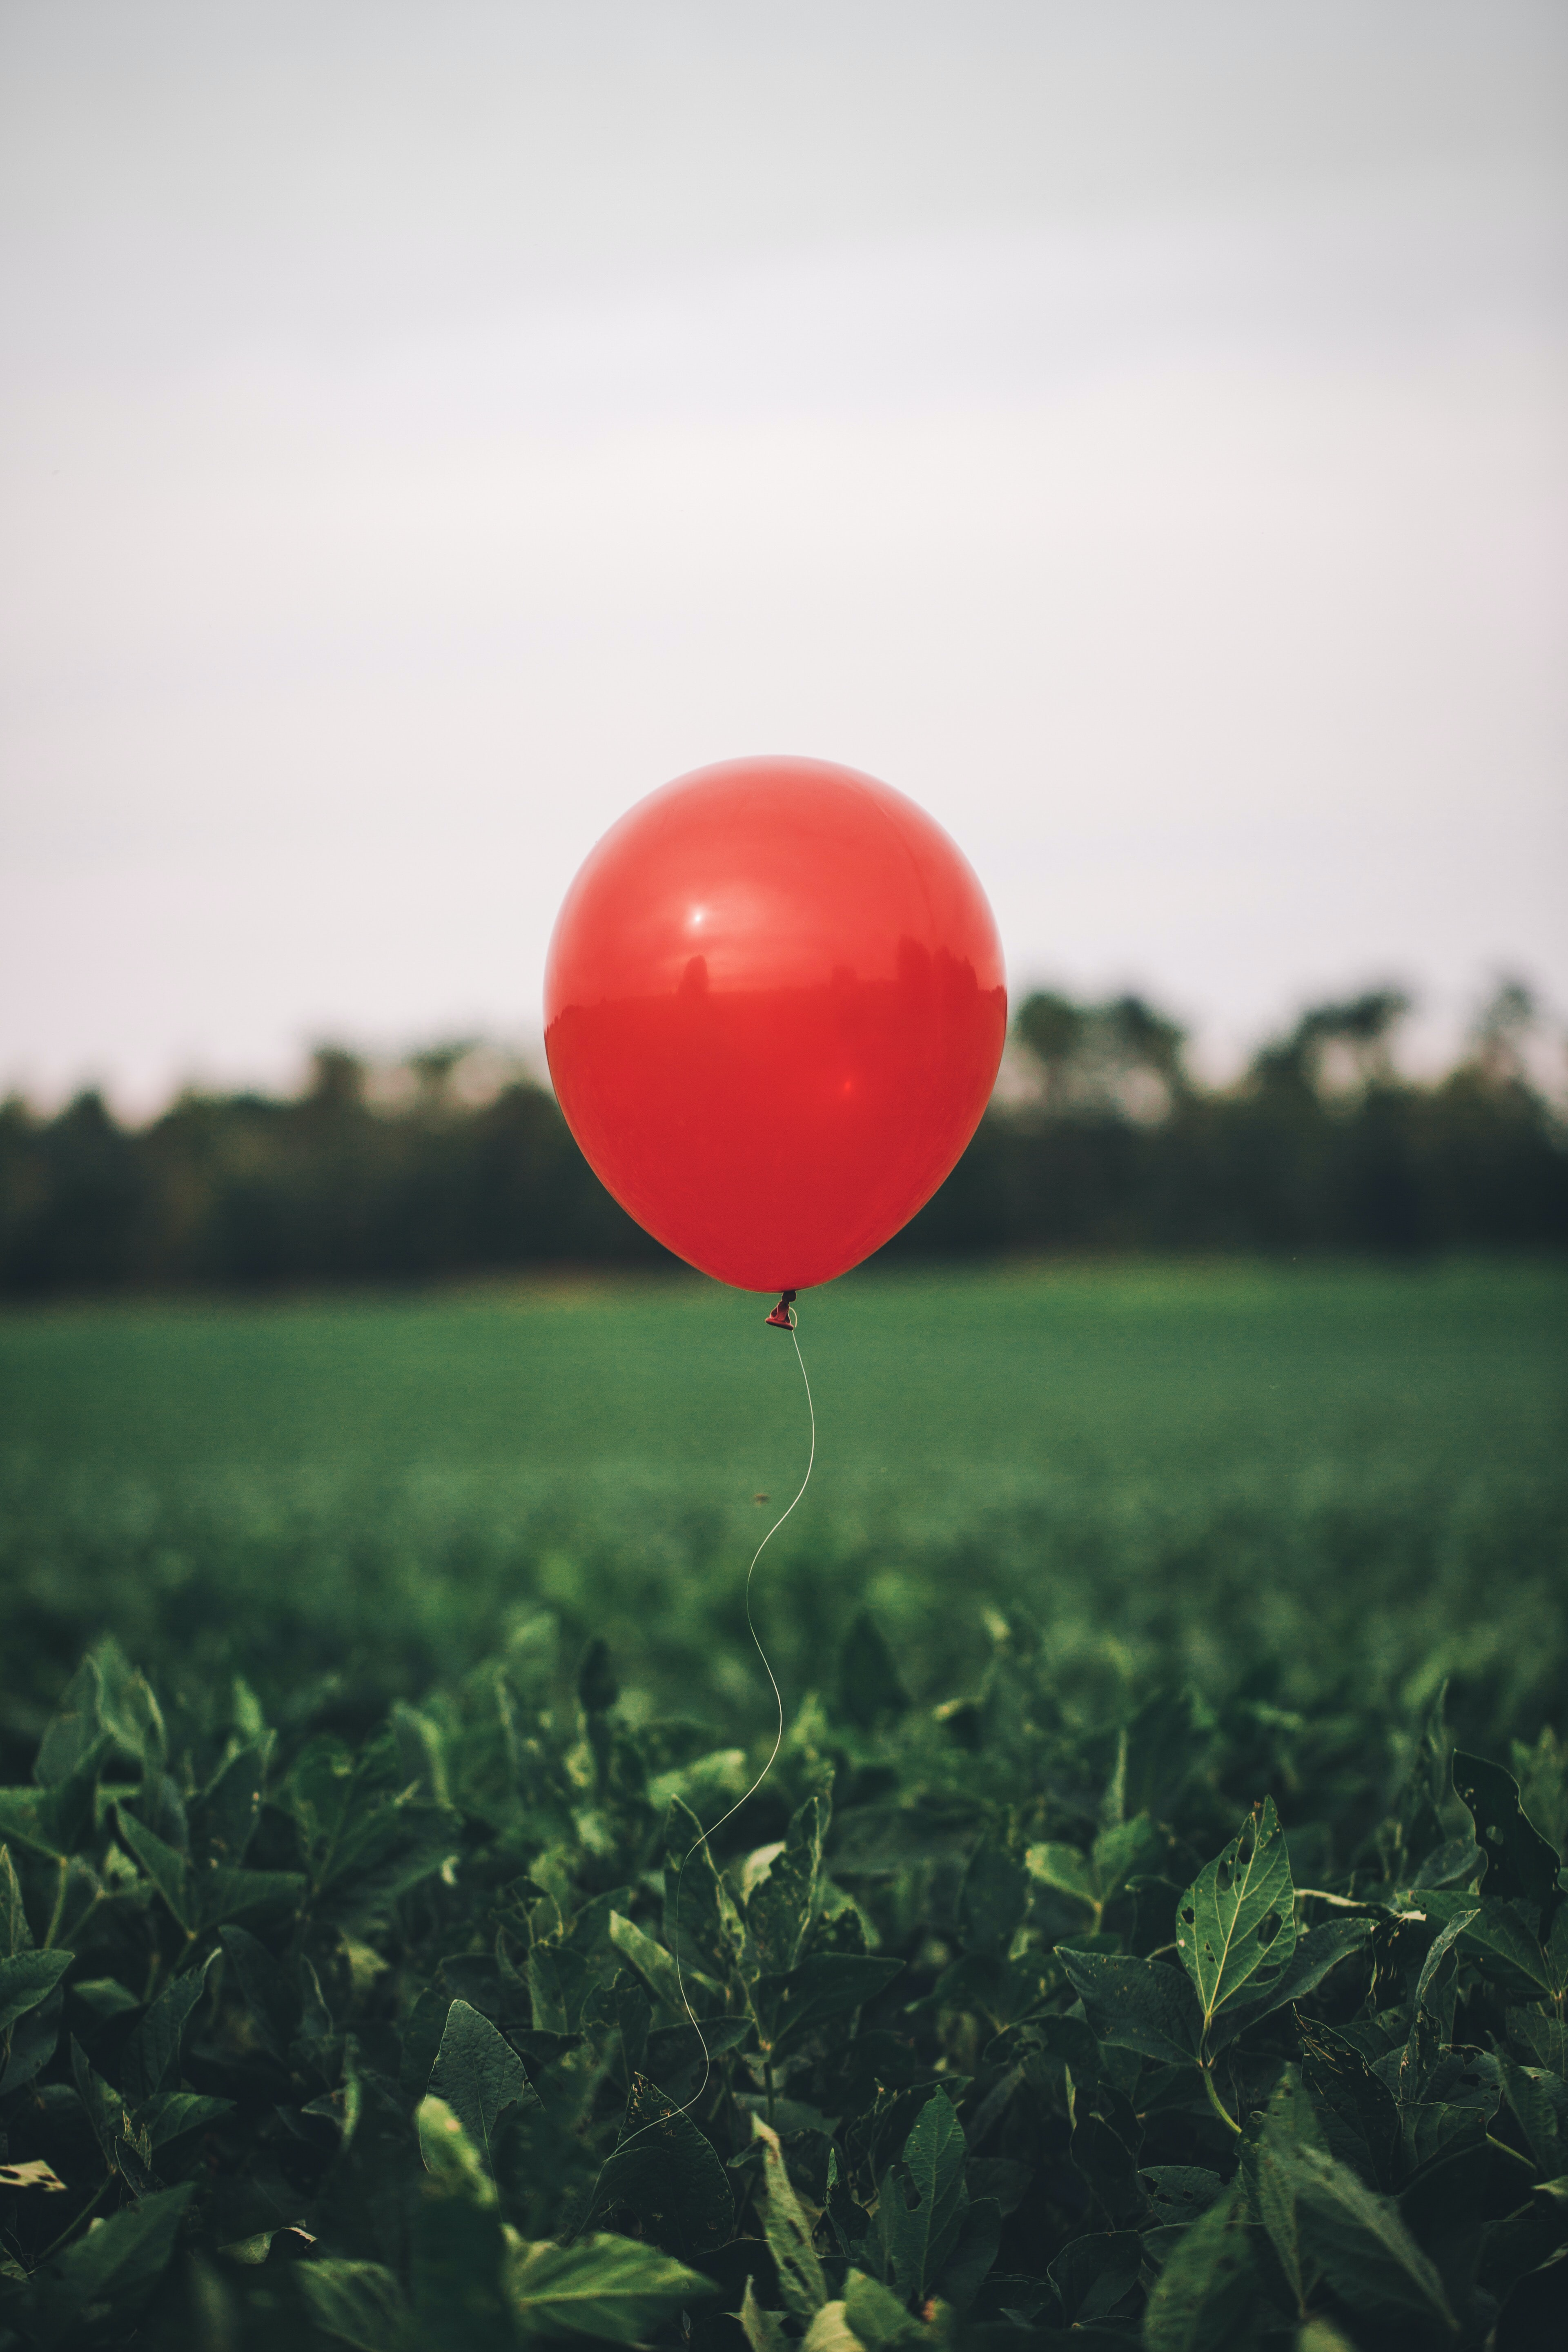 red balloon flying above plants